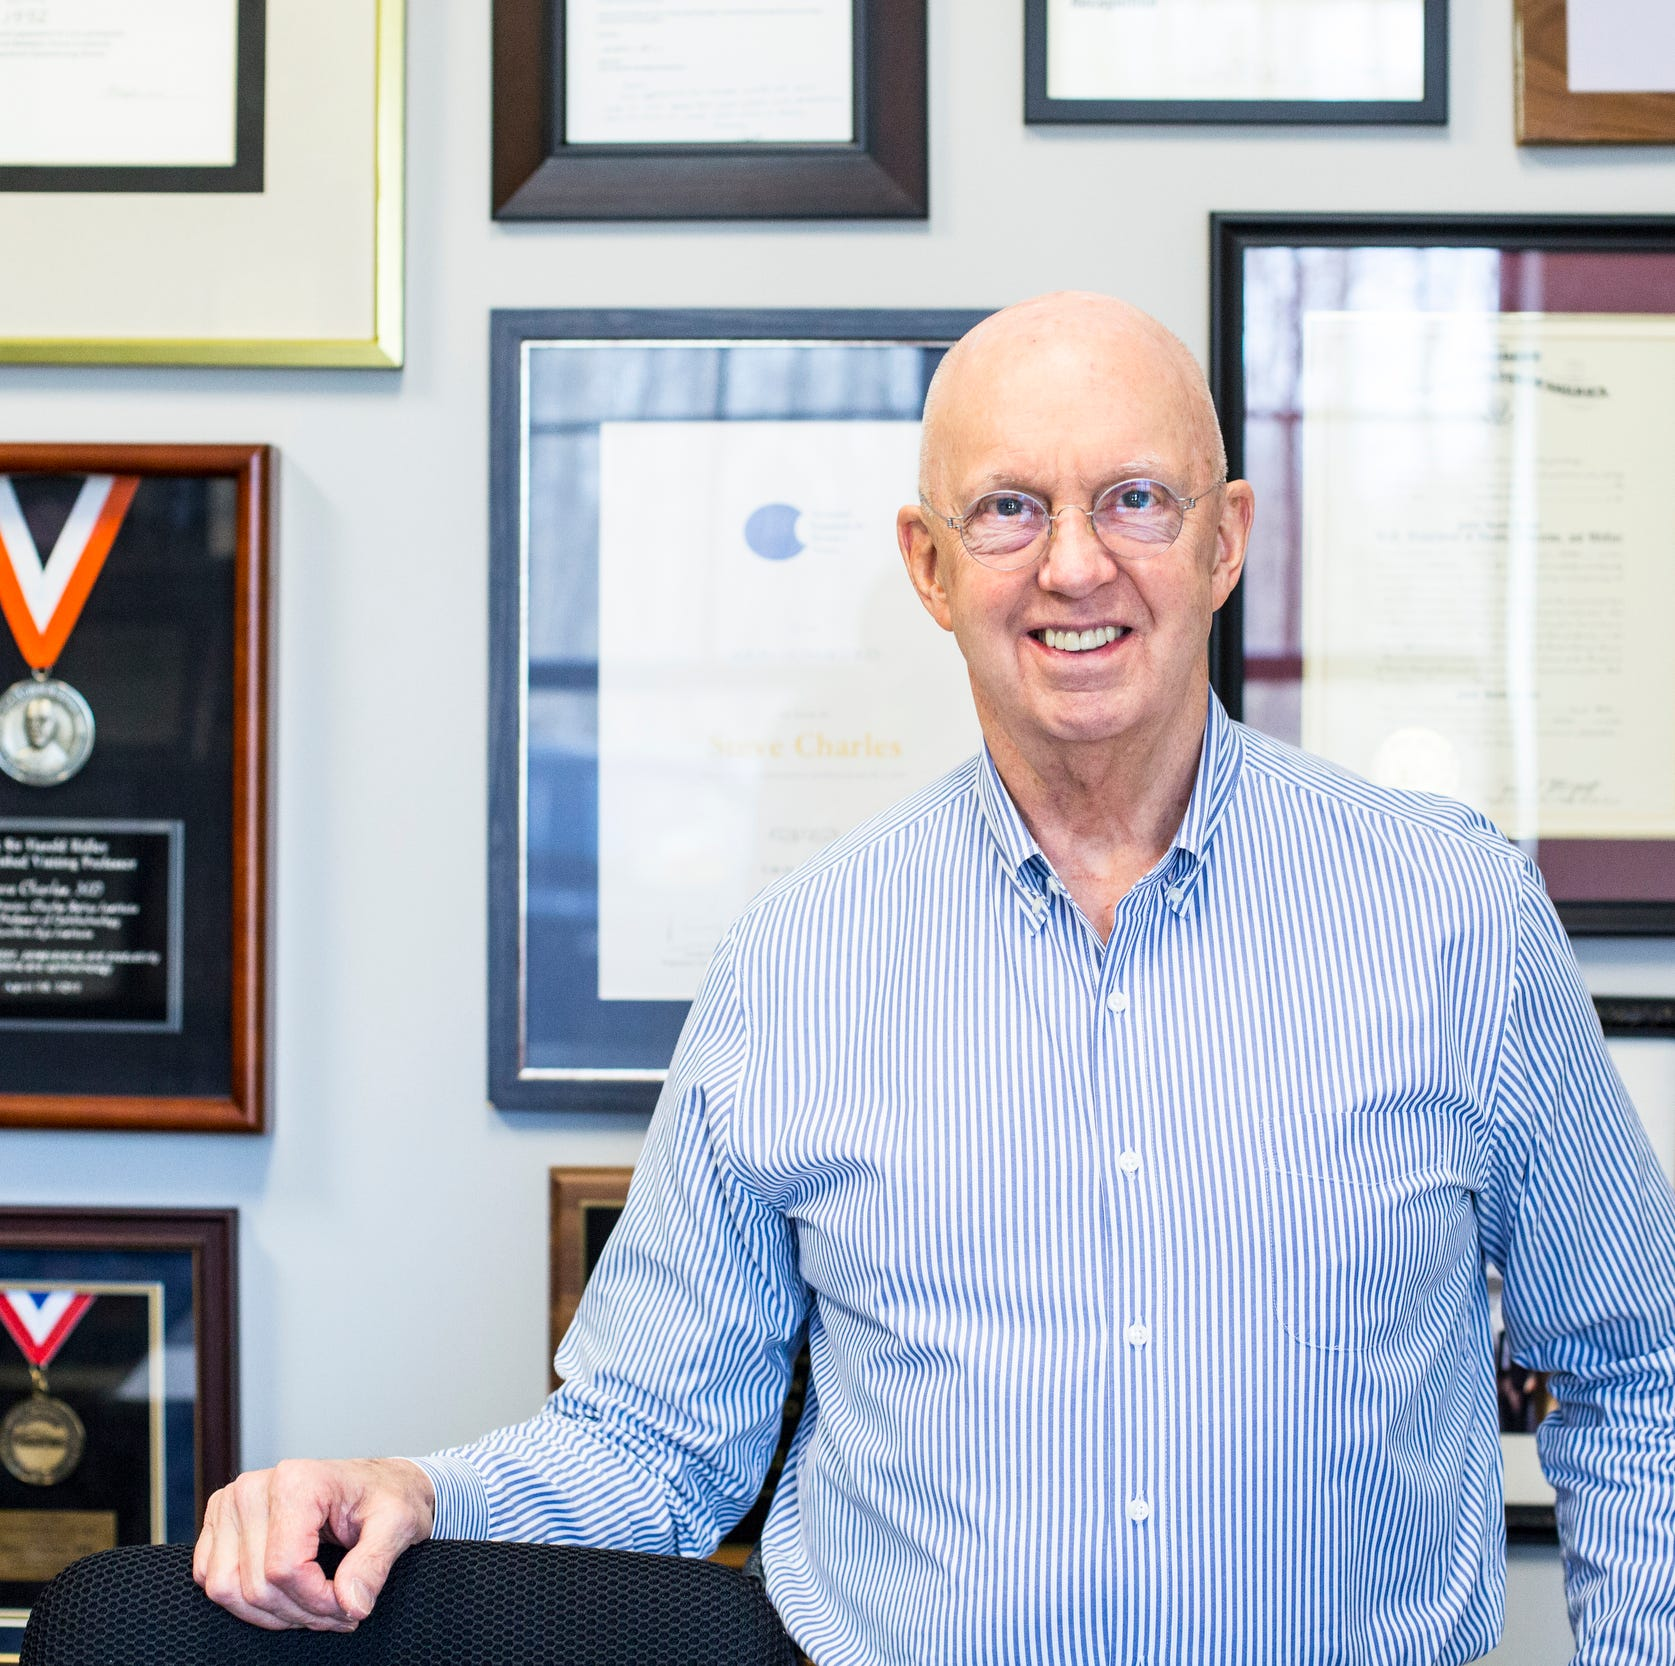 Evanoff: World's foremost eye surgeon works and works and works, in Germantown